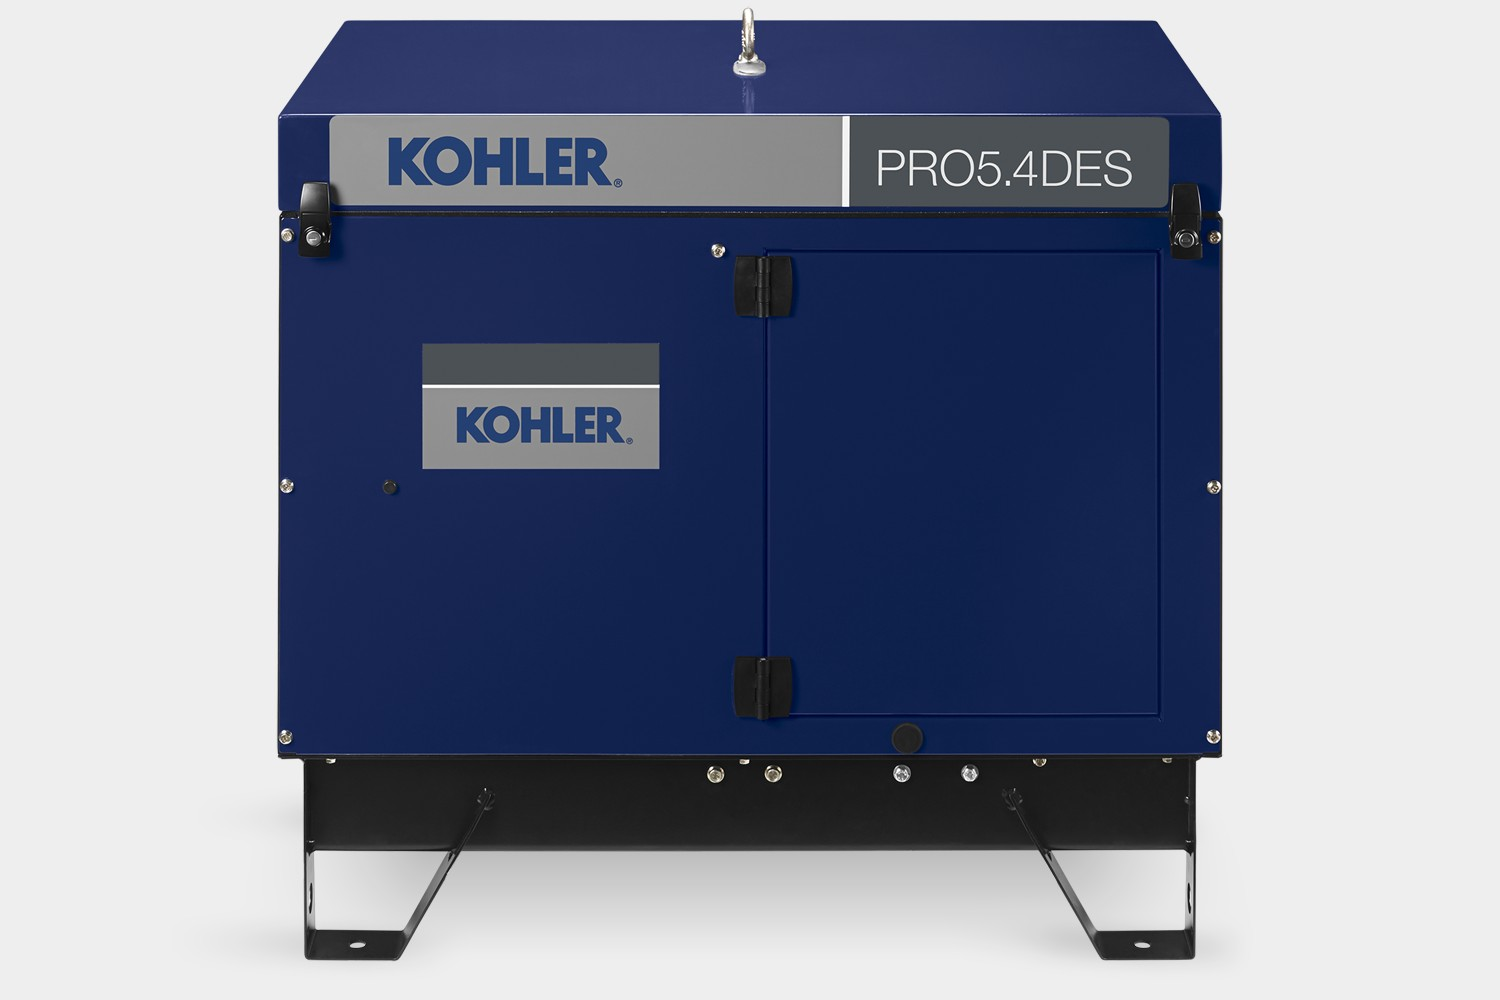 South Shore Generator - Kohler Diesel Portable Generator